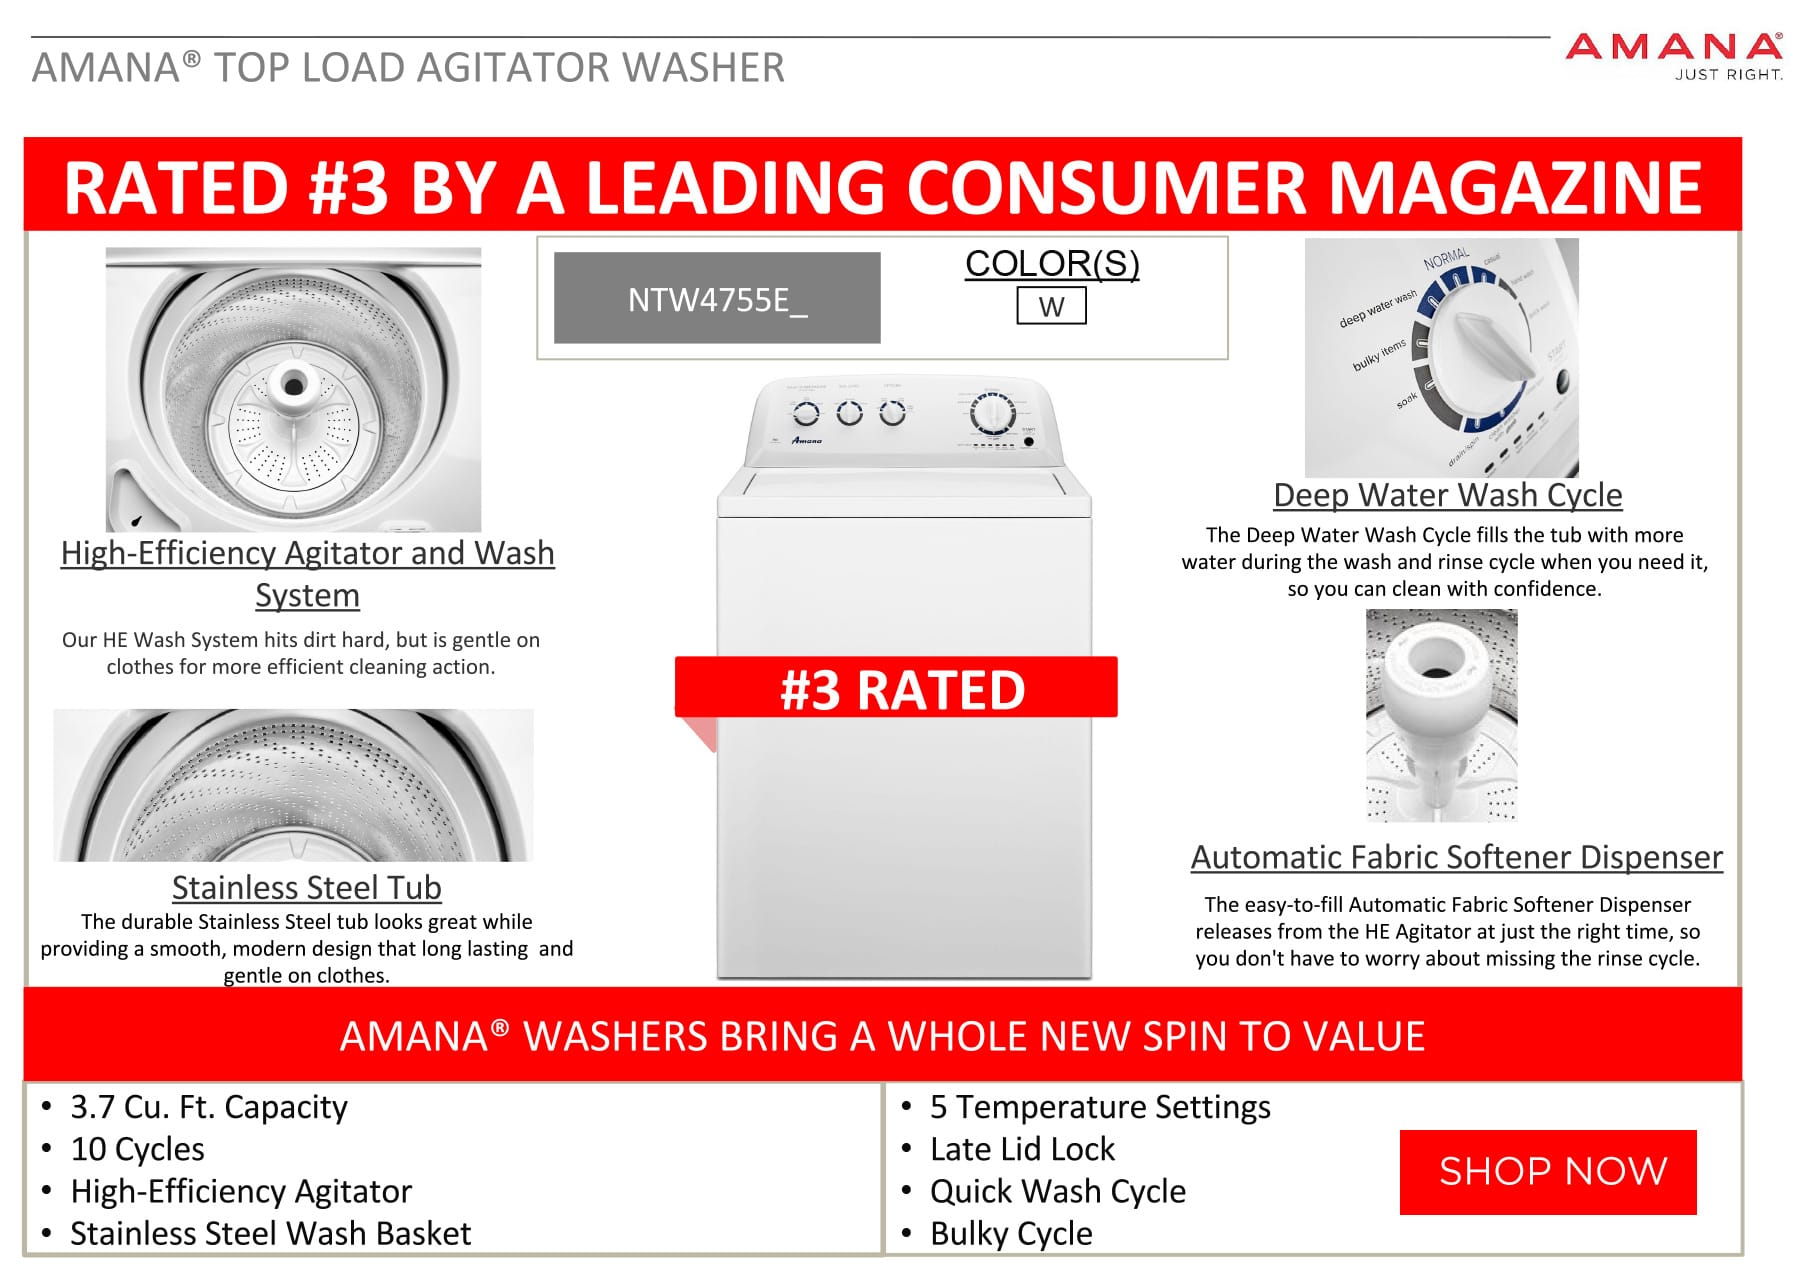 Amana Washer Rated #3